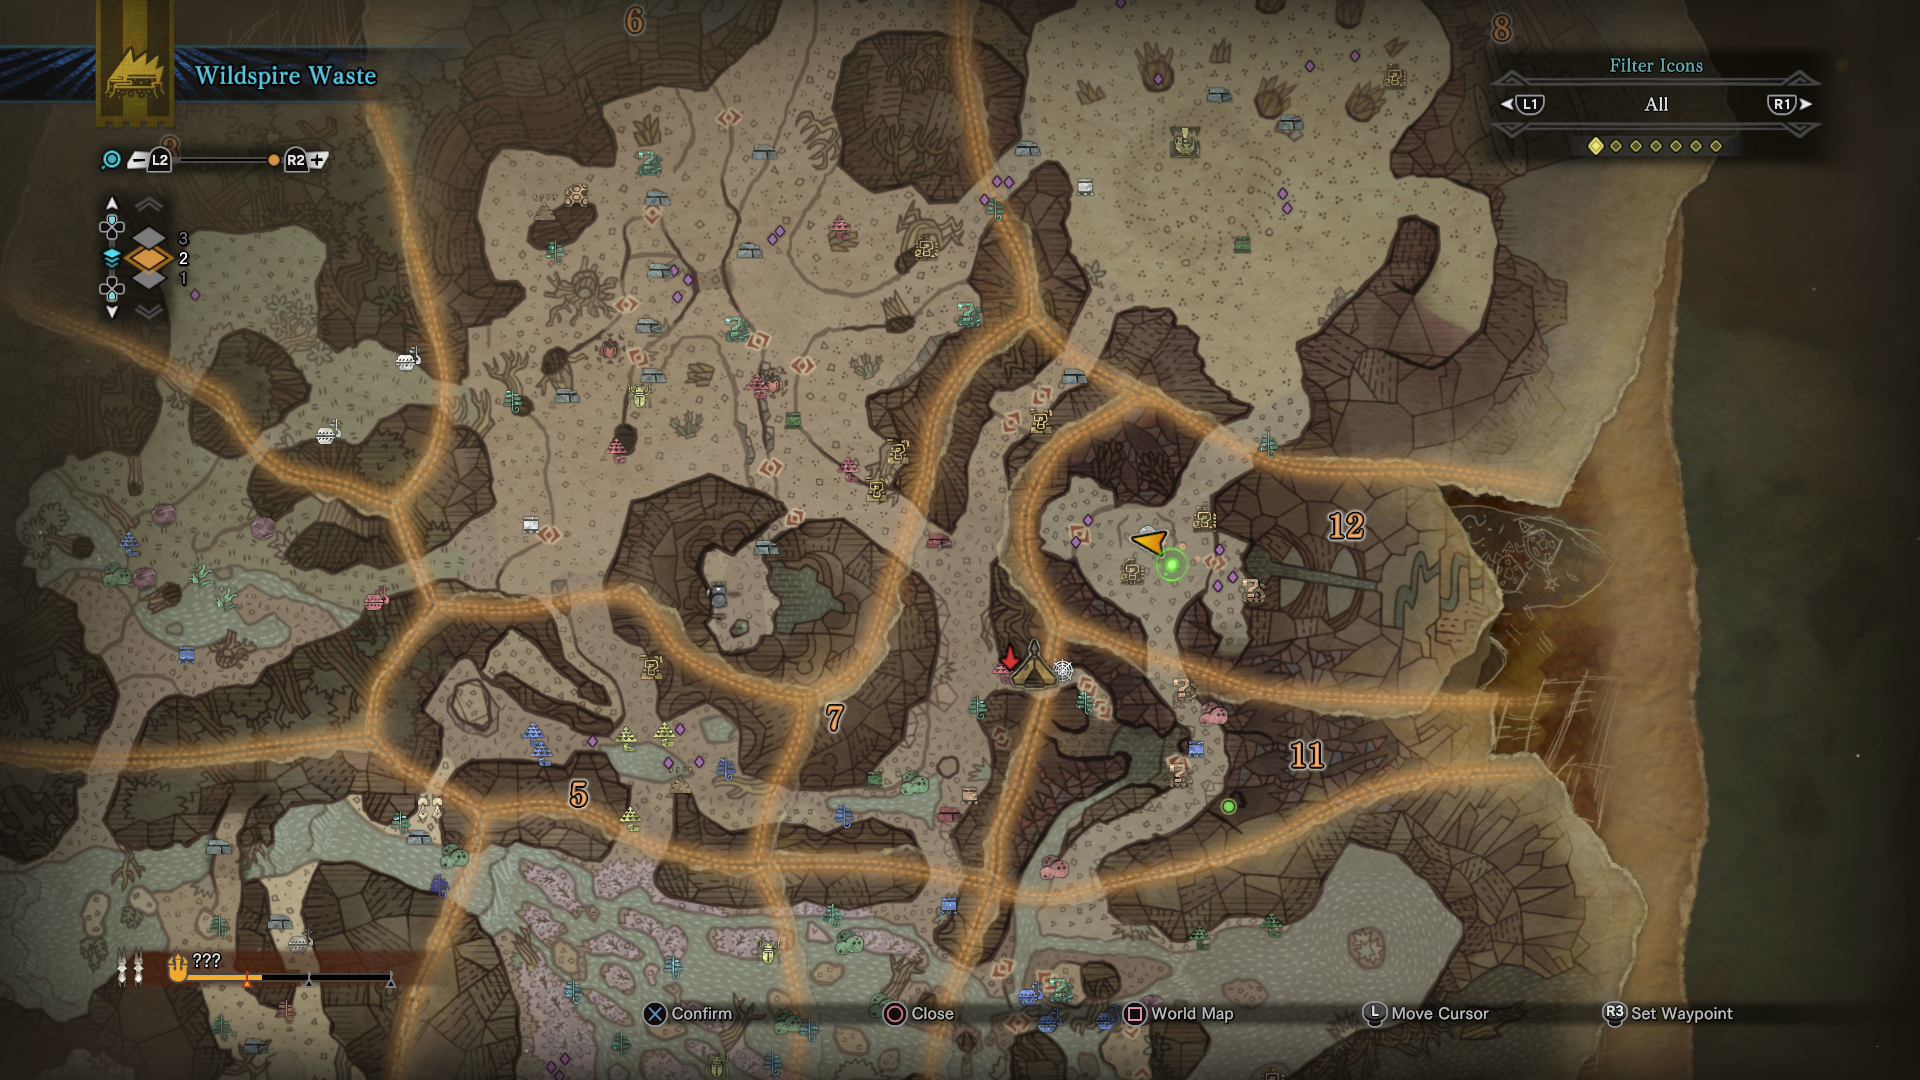 Monster hunter world wildspire waste guide complete map overview there are fewer plants up in this area of the wildspire waste map but you can find needleberry slashberry bonepiles mining outcrops herbs and kestadon gumiabroncs Gallery